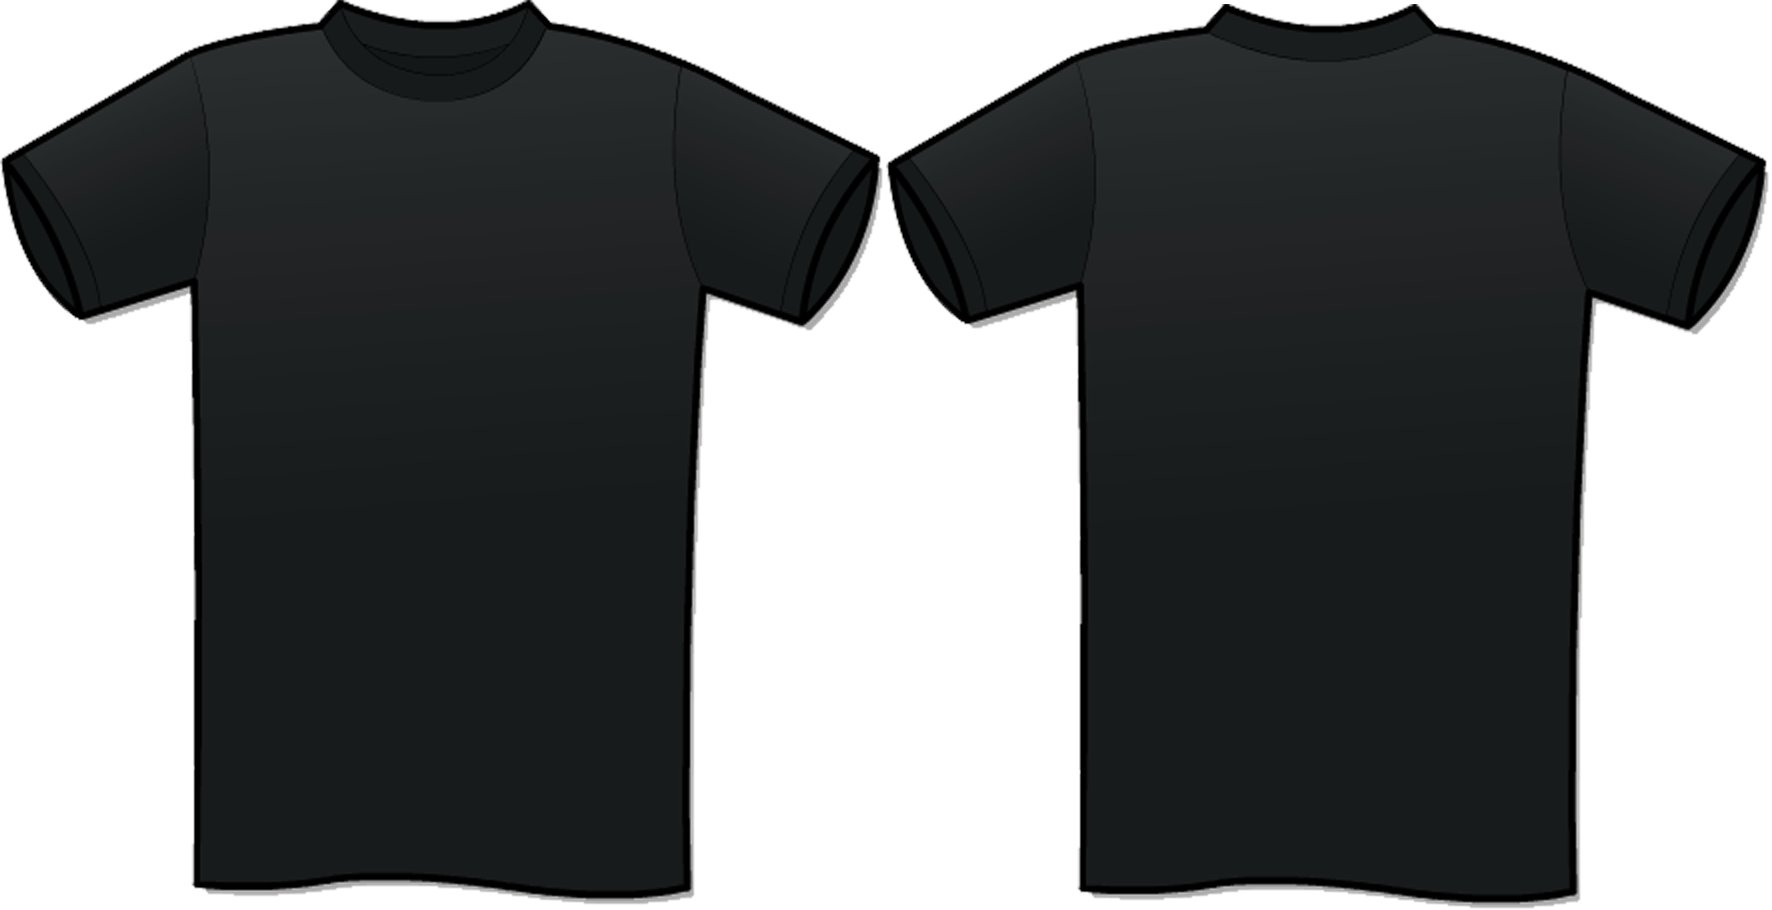 Black t shirt blank template - Download